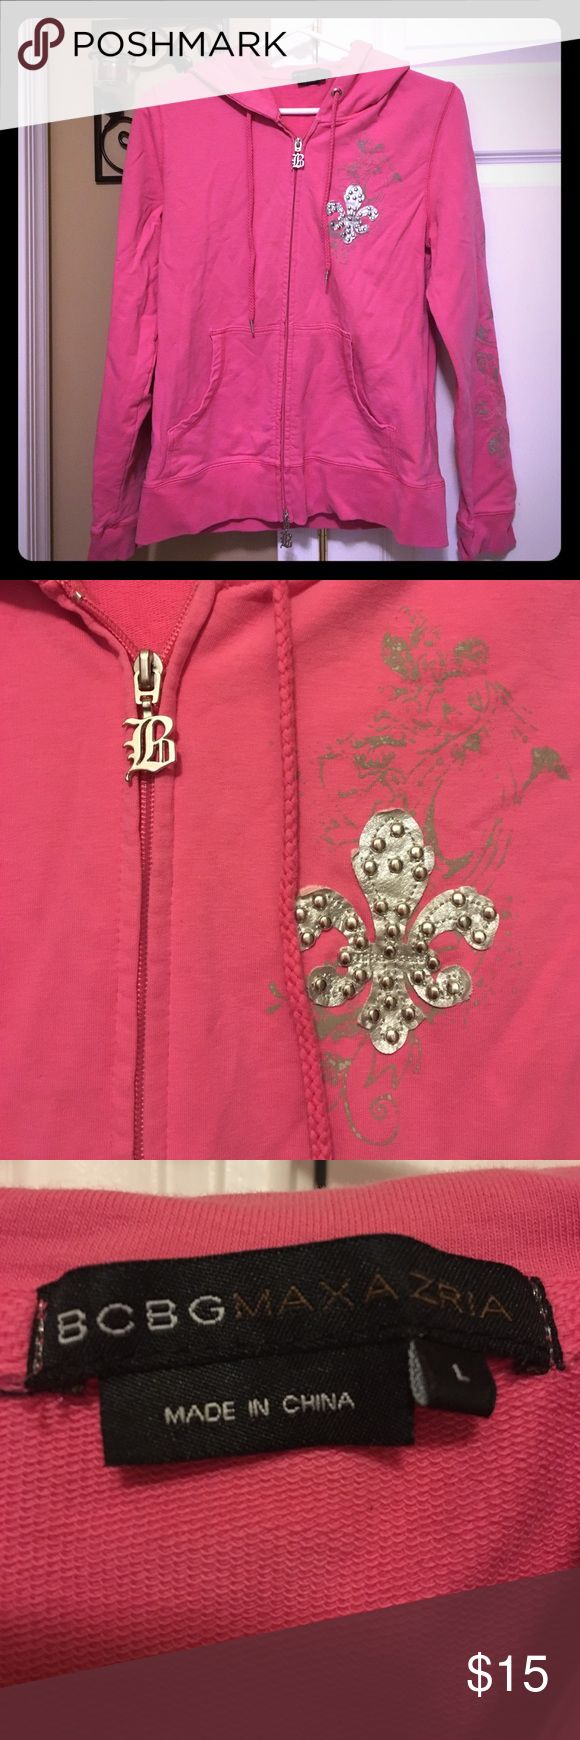 BCBG Maxazria zip up hoodie size Large Cute pink zip up hoodie by BCBG. Excellent condition, no pilling, stains or flaws. Size Large. BCBGMaxAzria Tops Sweatshirts & Hoodies